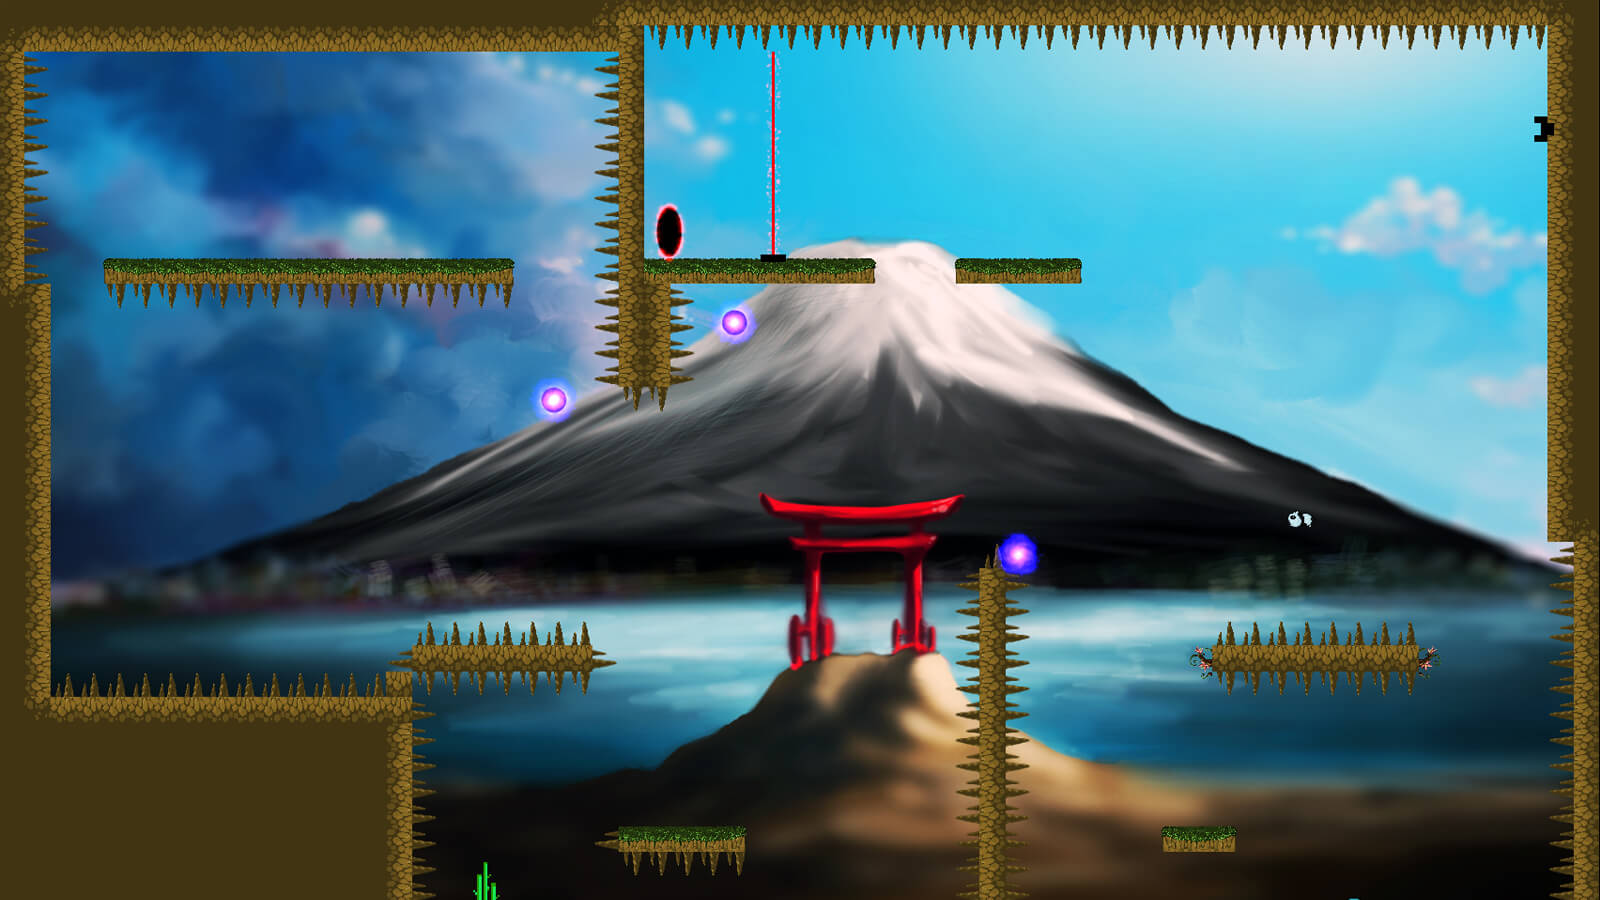 A hazardous level full of spiked surfaces, floating purple orbs, and red laser barriers.